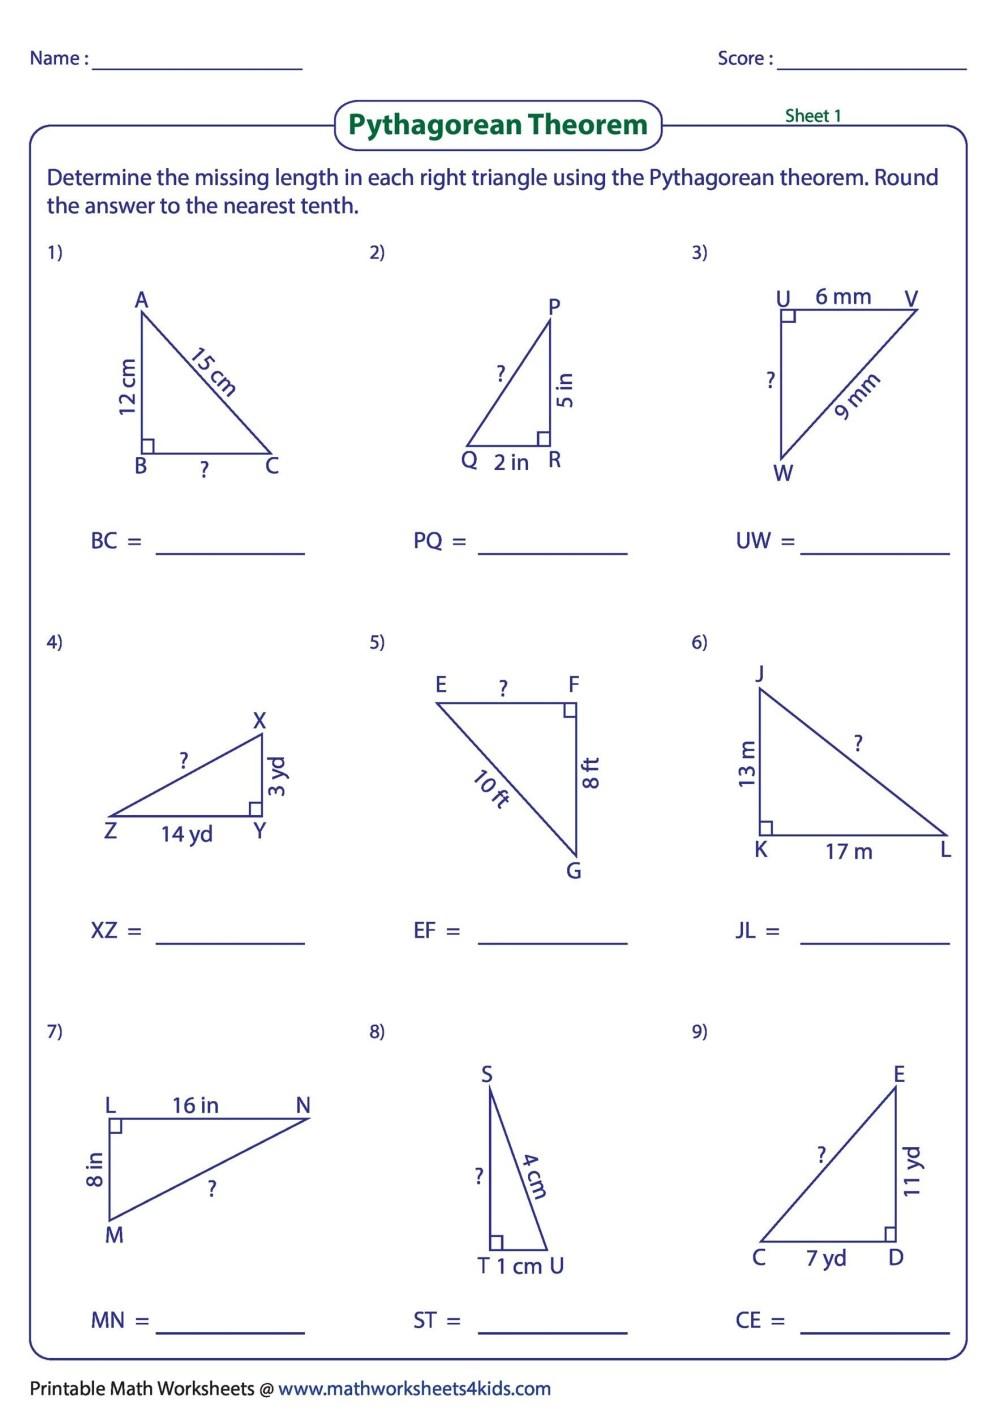 medium resolution of 34 Pythagorean Theorem Worksheet Answer Key - Worksheet Project List